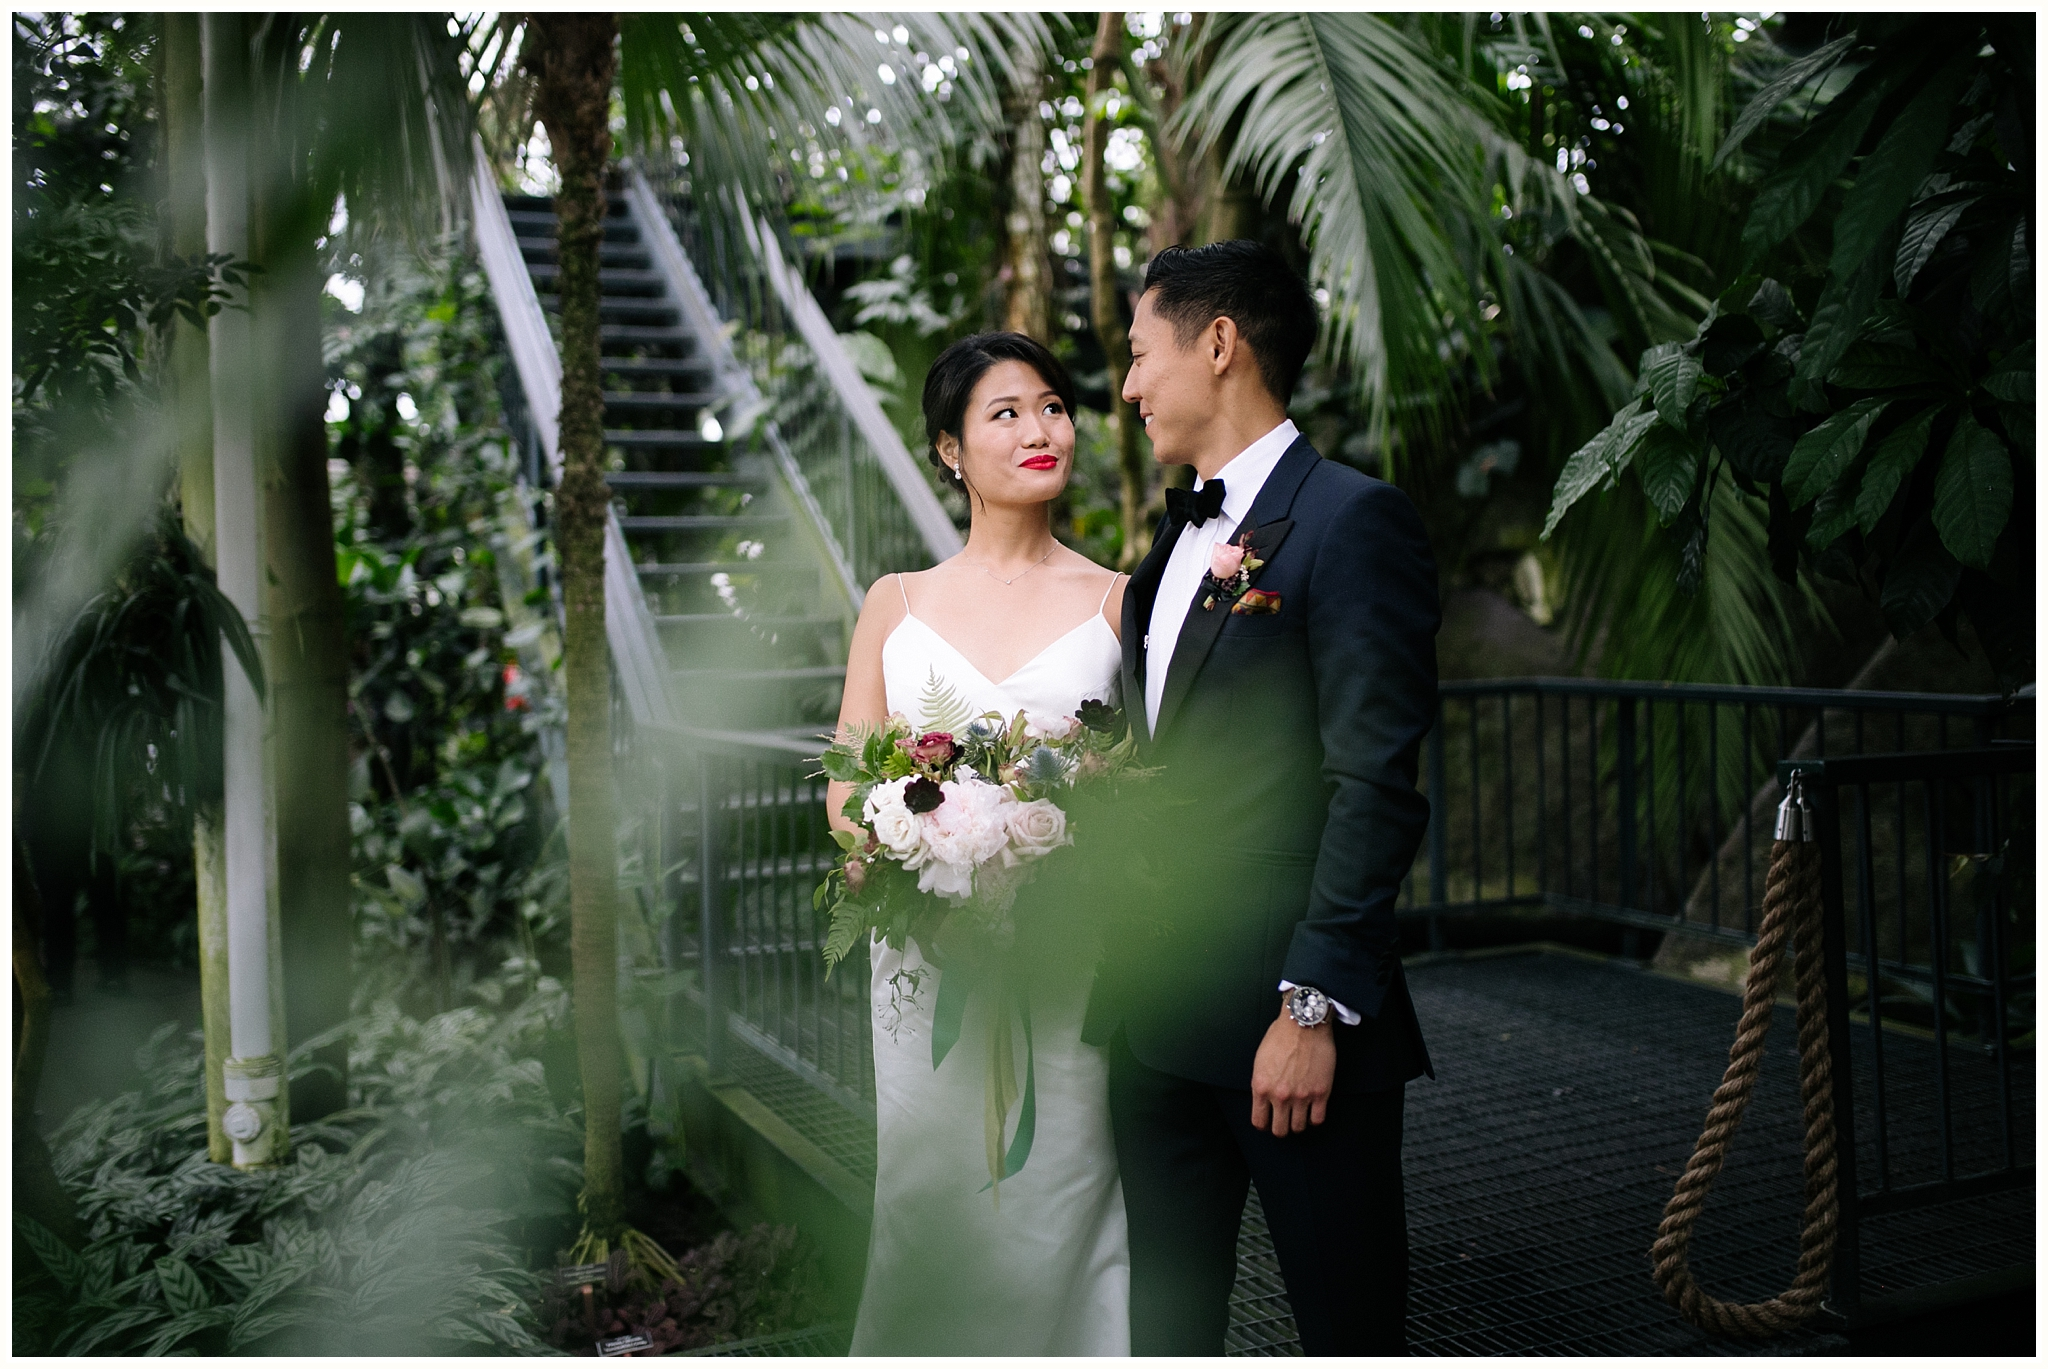 Crystal & Dave - New York Botanical Garden Wedding - NYC